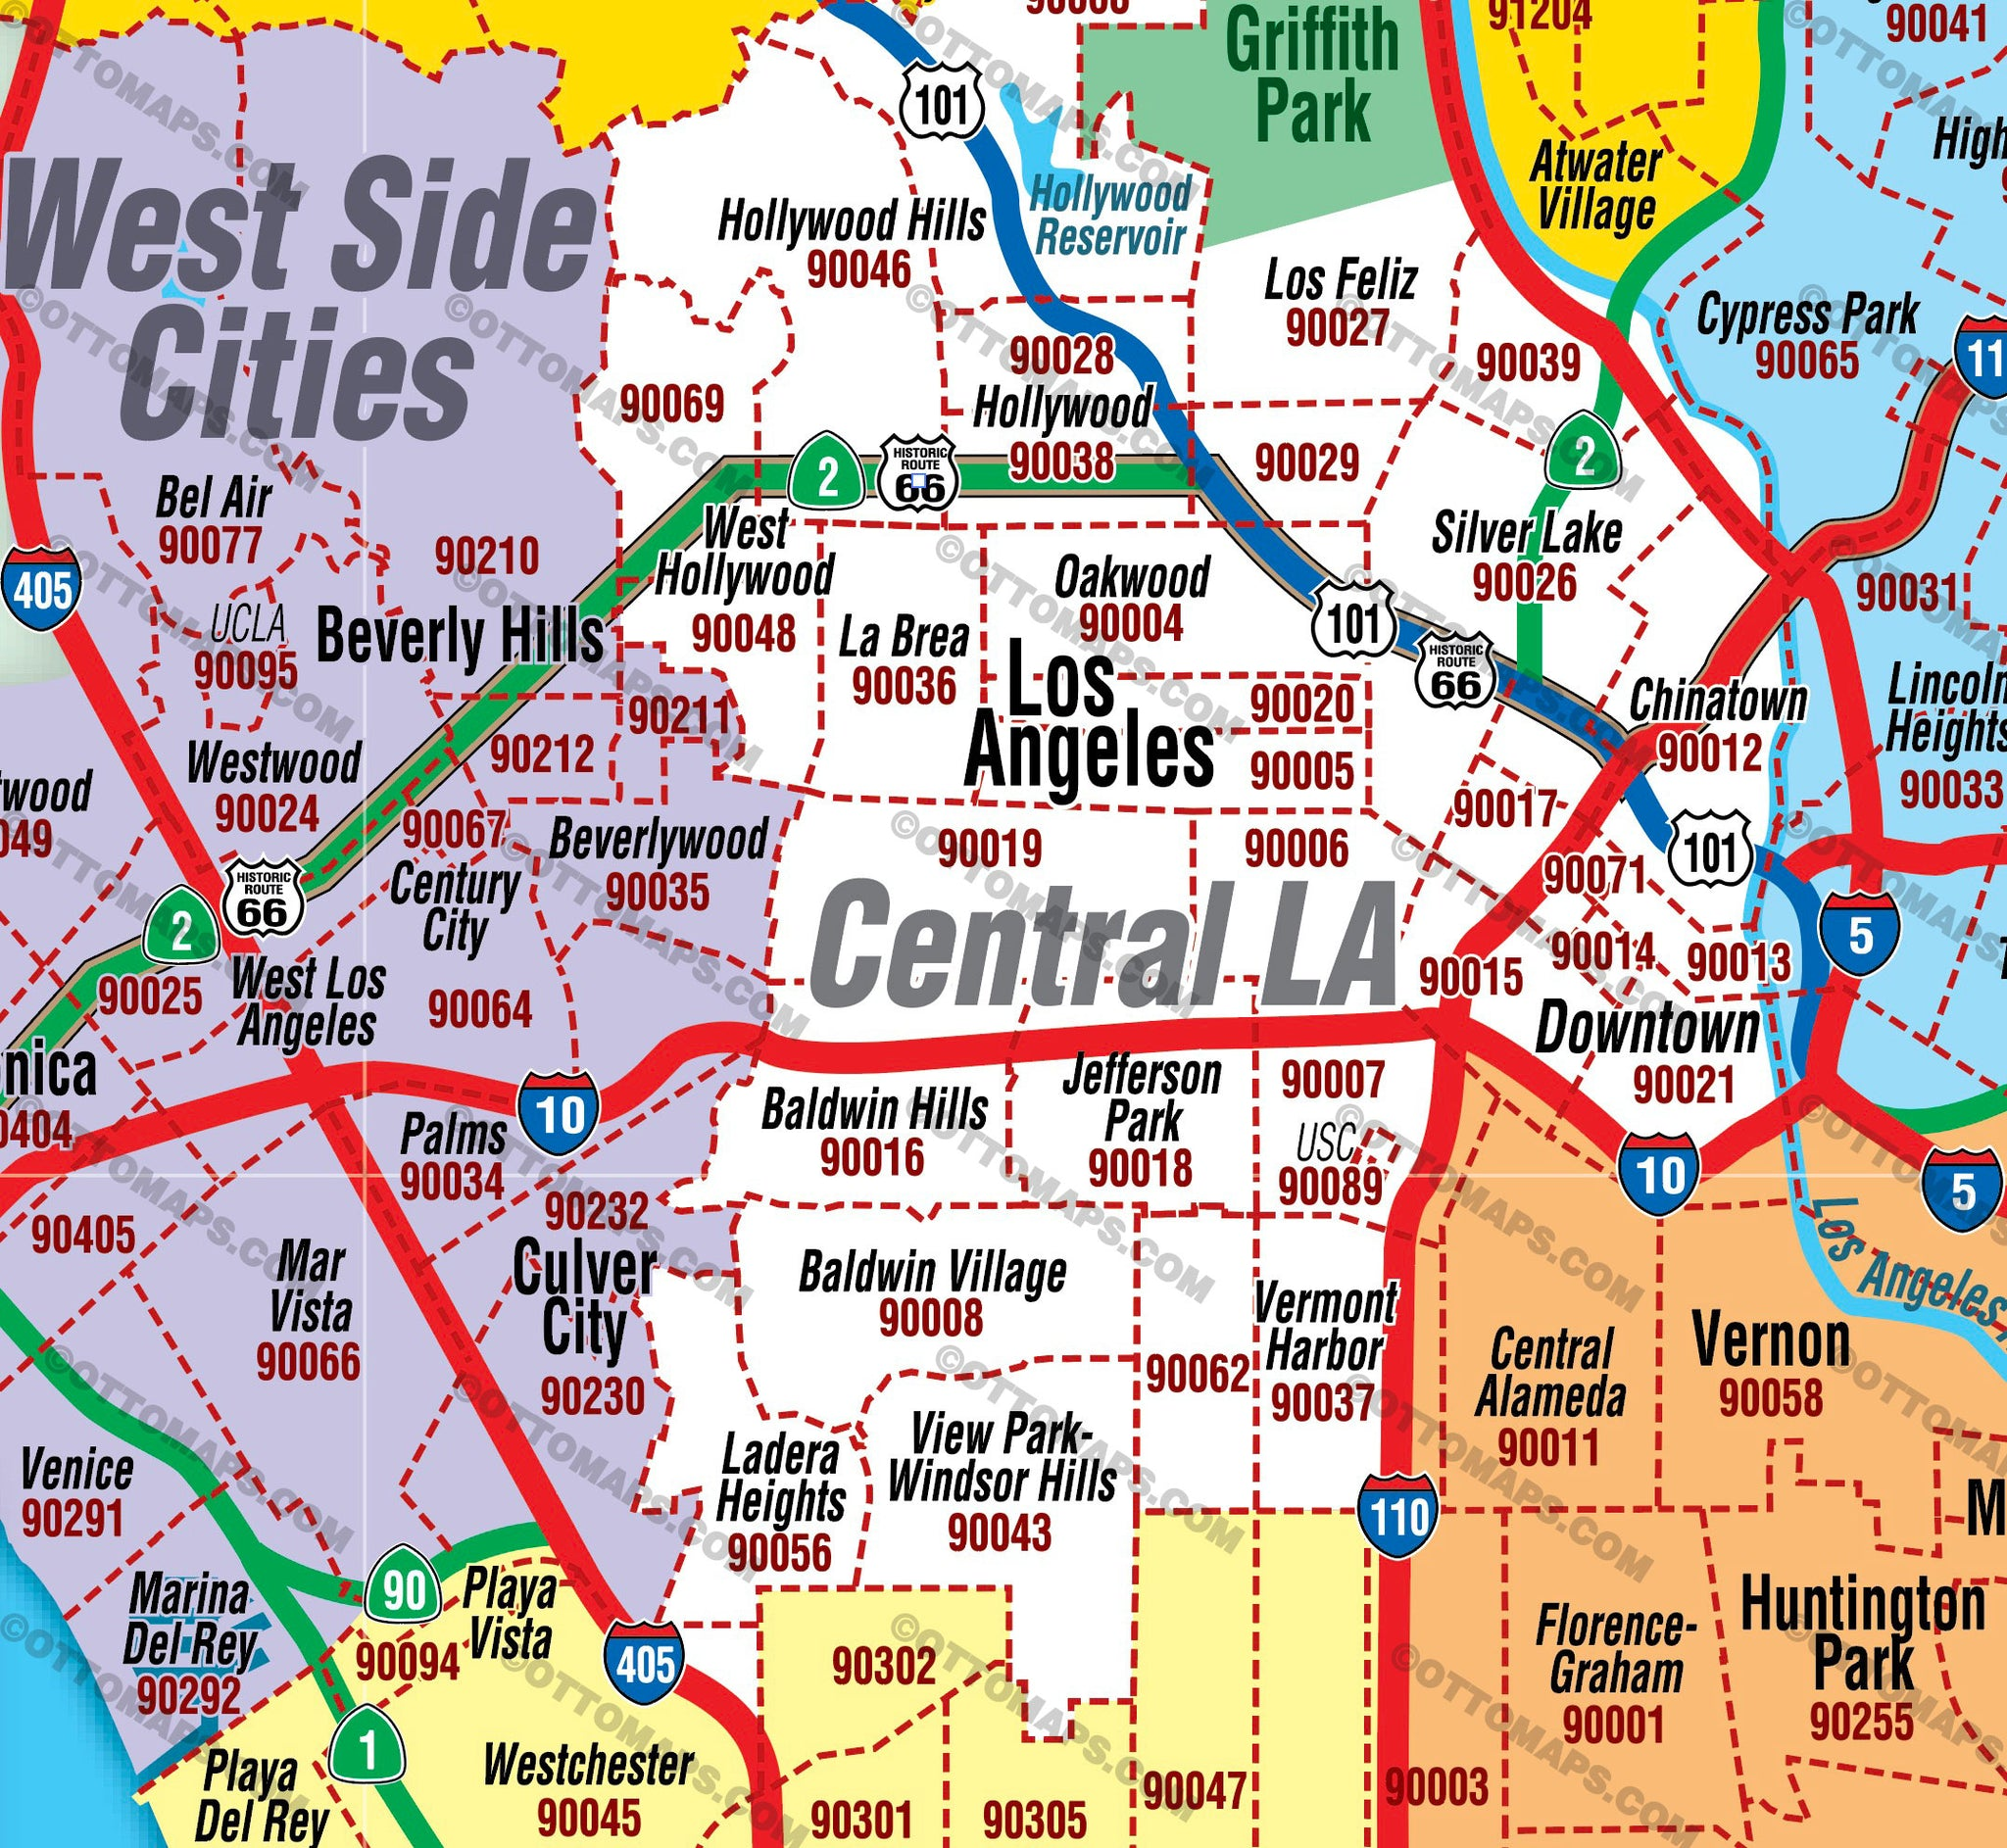 Los Angeles Zip Code Map Los Angeles Zip Code Map   FULL (County Areas colorized) – Otto Maps